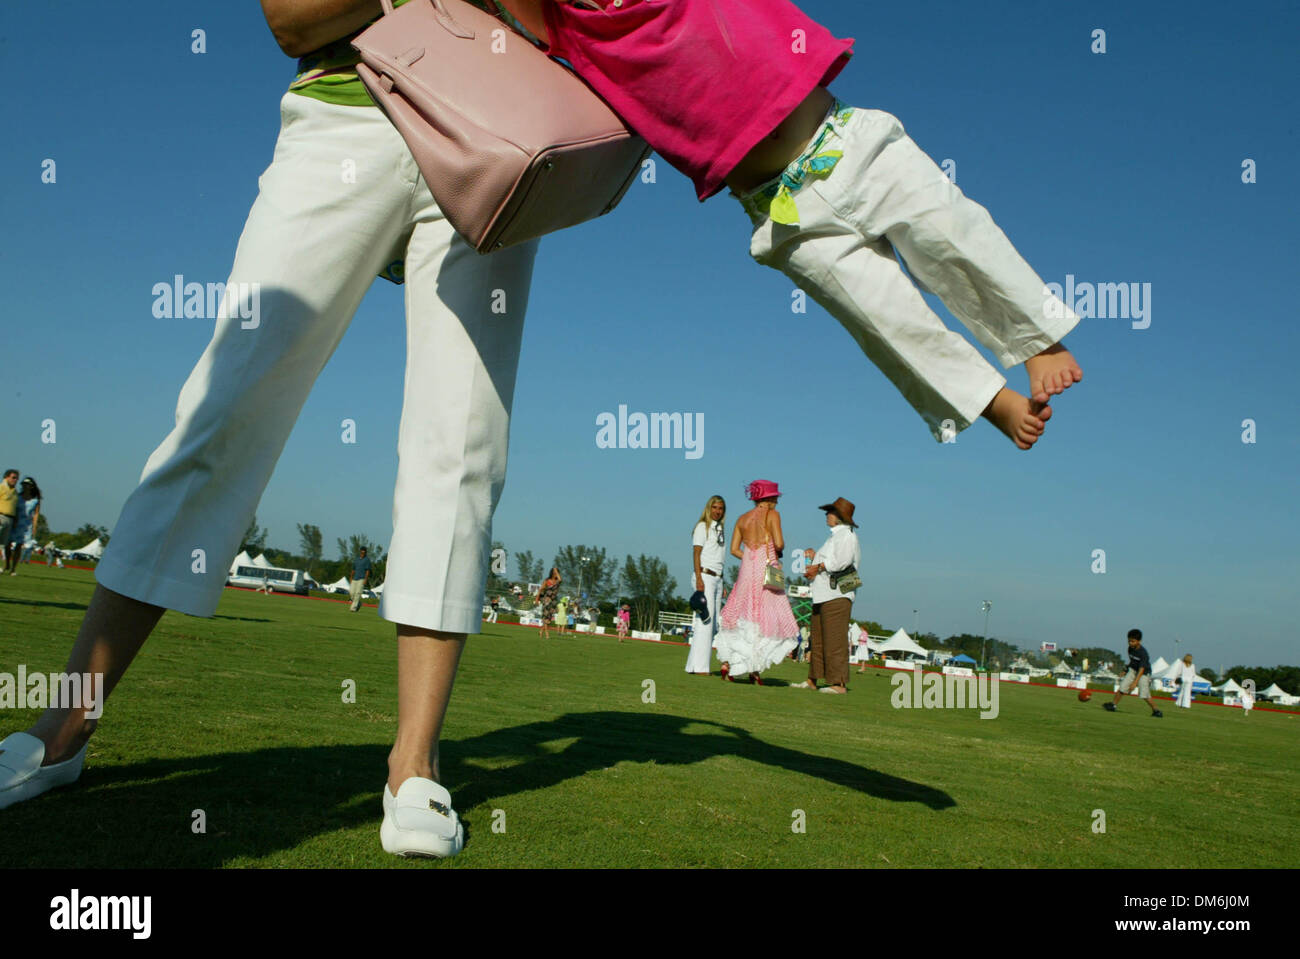 May 08, 2005; West Palm Beach, USA, USA; MARIE JOHNSON of Gulf Stream swings her daughet Lilly, 2, on the polo field during halftime at the FIP Global Cup at Royal Palm Polo in Boca Raton. Mandatory Credit: Photo by Boca Raton/Palm Beach Post/ZUMA Press. (©) Copyright 2005 by Boca Raton/Palm Beach Post - Stock Image